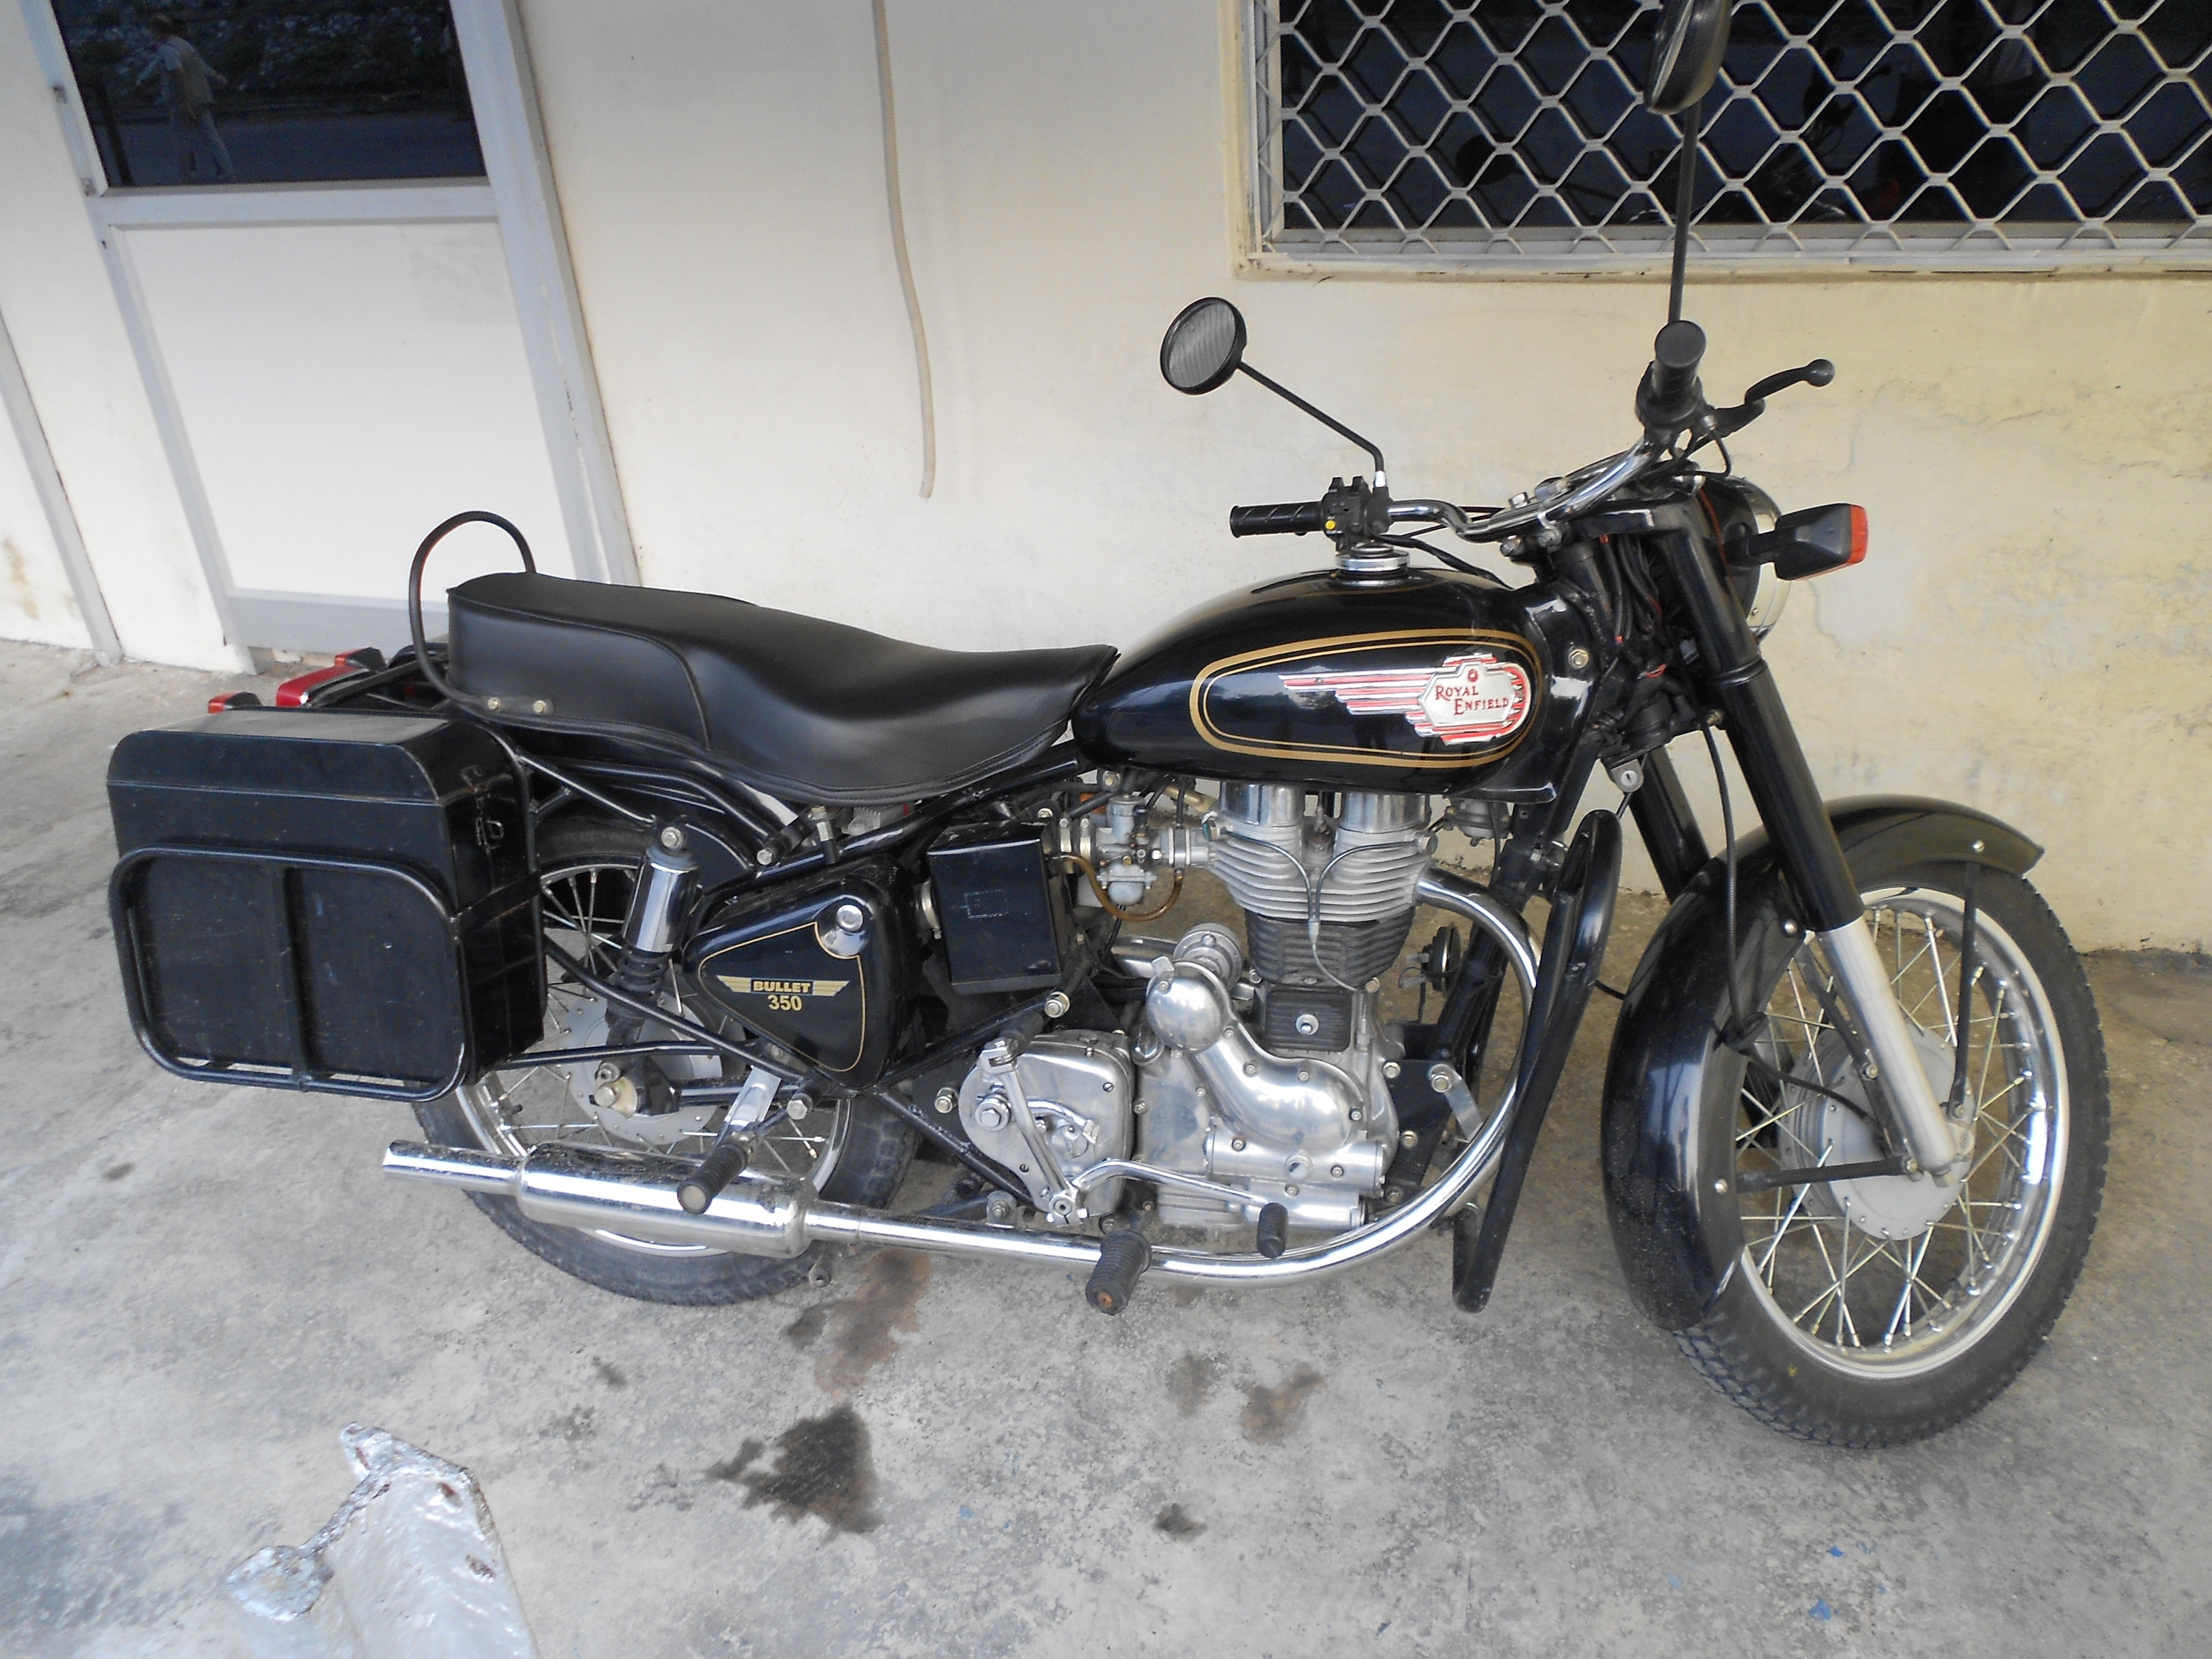 Royal Enfield Bullet 350 Army 2002 images #123576